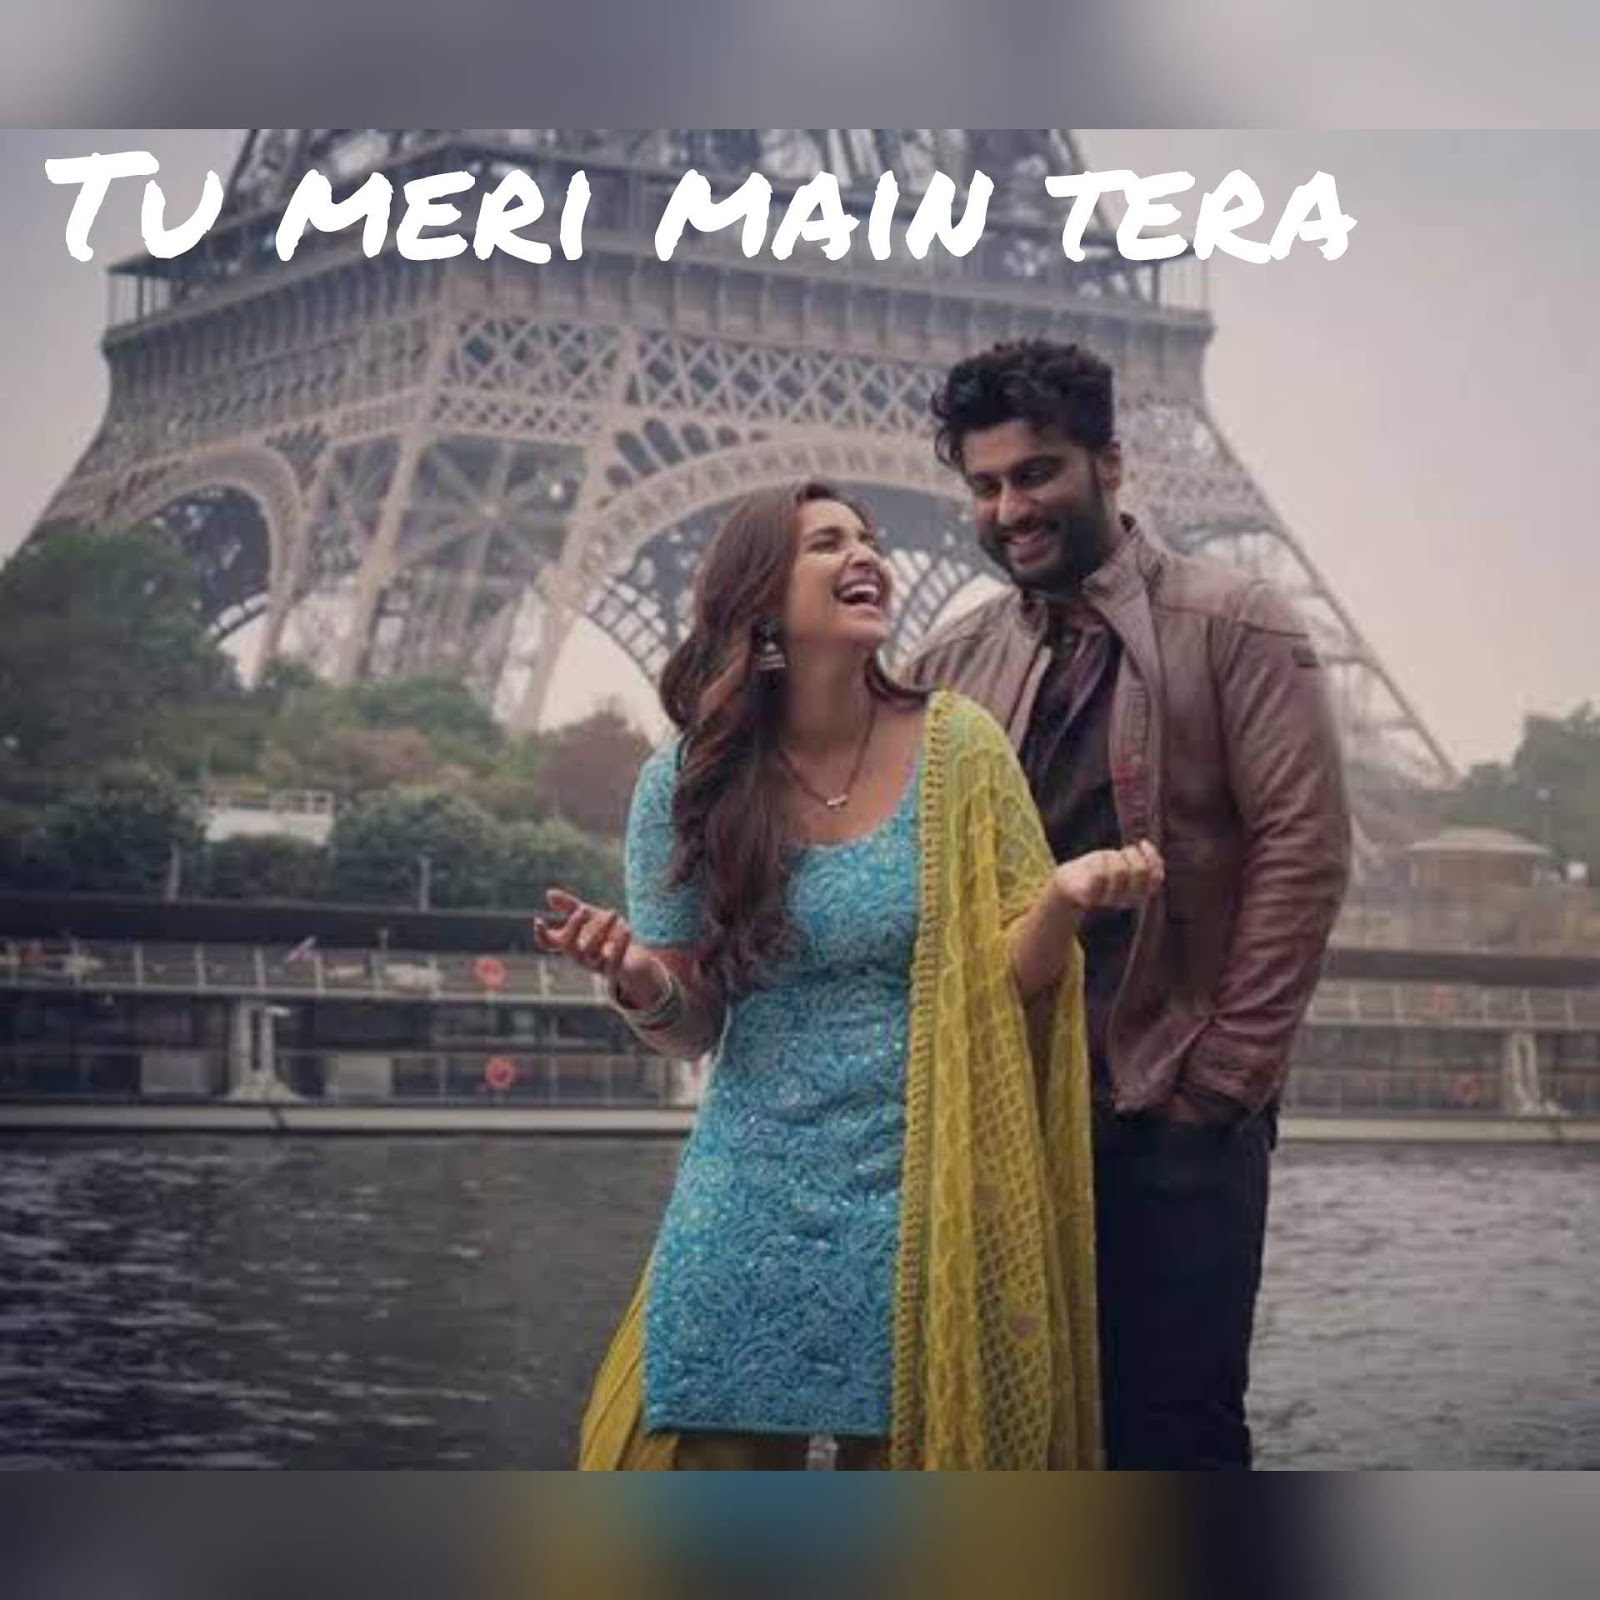 Tu Hi Hai Bas Yara Song Download: TU MERI MAIN TERA LYRICS & Download